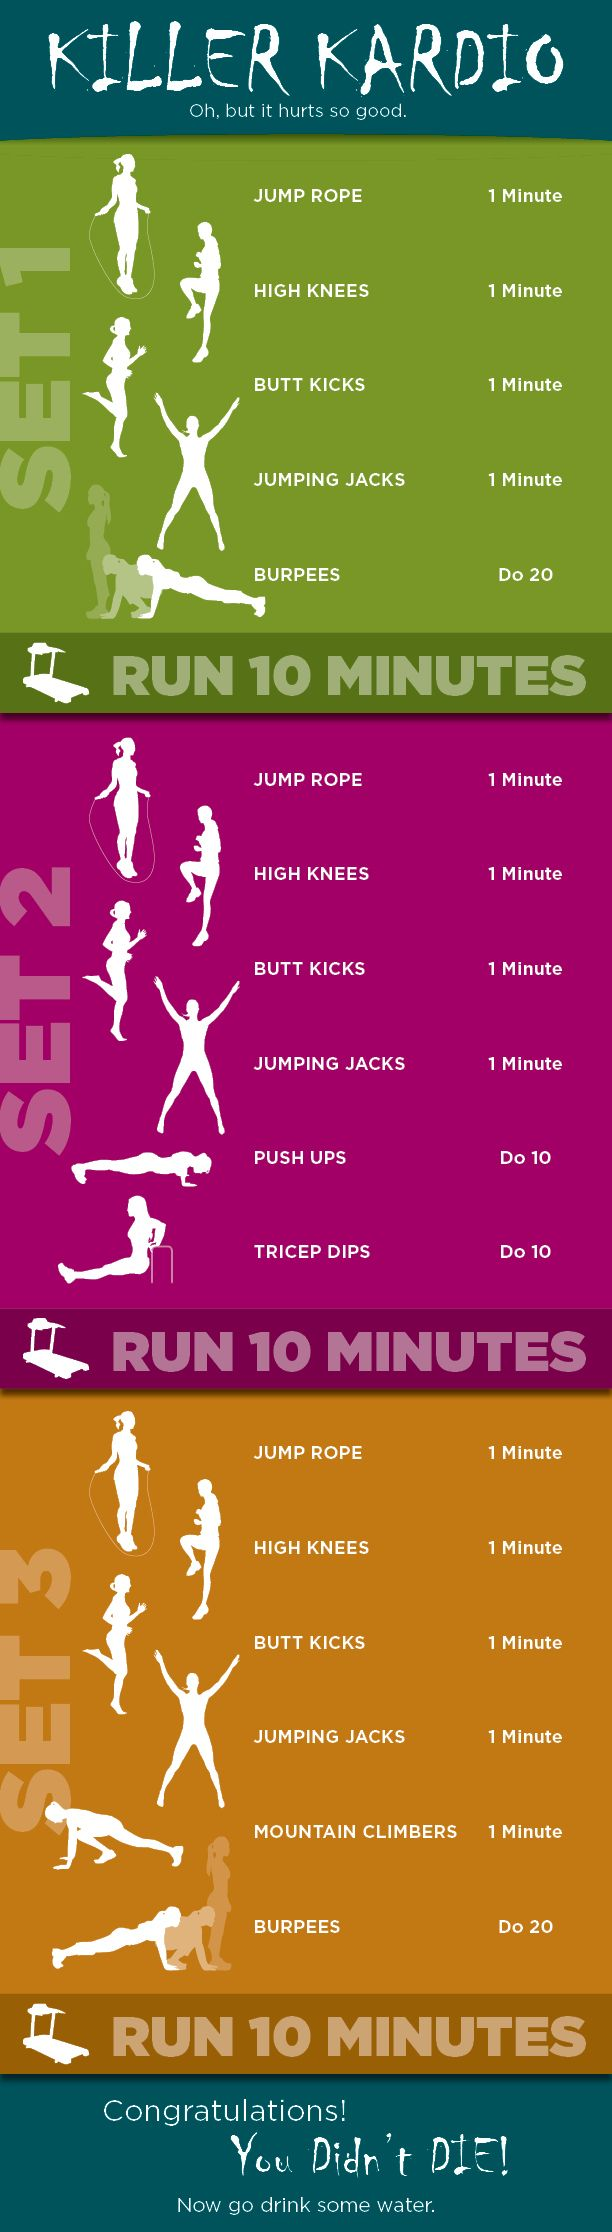 Cardio WorkoutCardio Workouts, Killers Cardio, Home Workout Plan, Cardio Challenge, Killers Kardio, Cardioworkout, At Home Workout, Cardio Workout Challenge, Good Workout